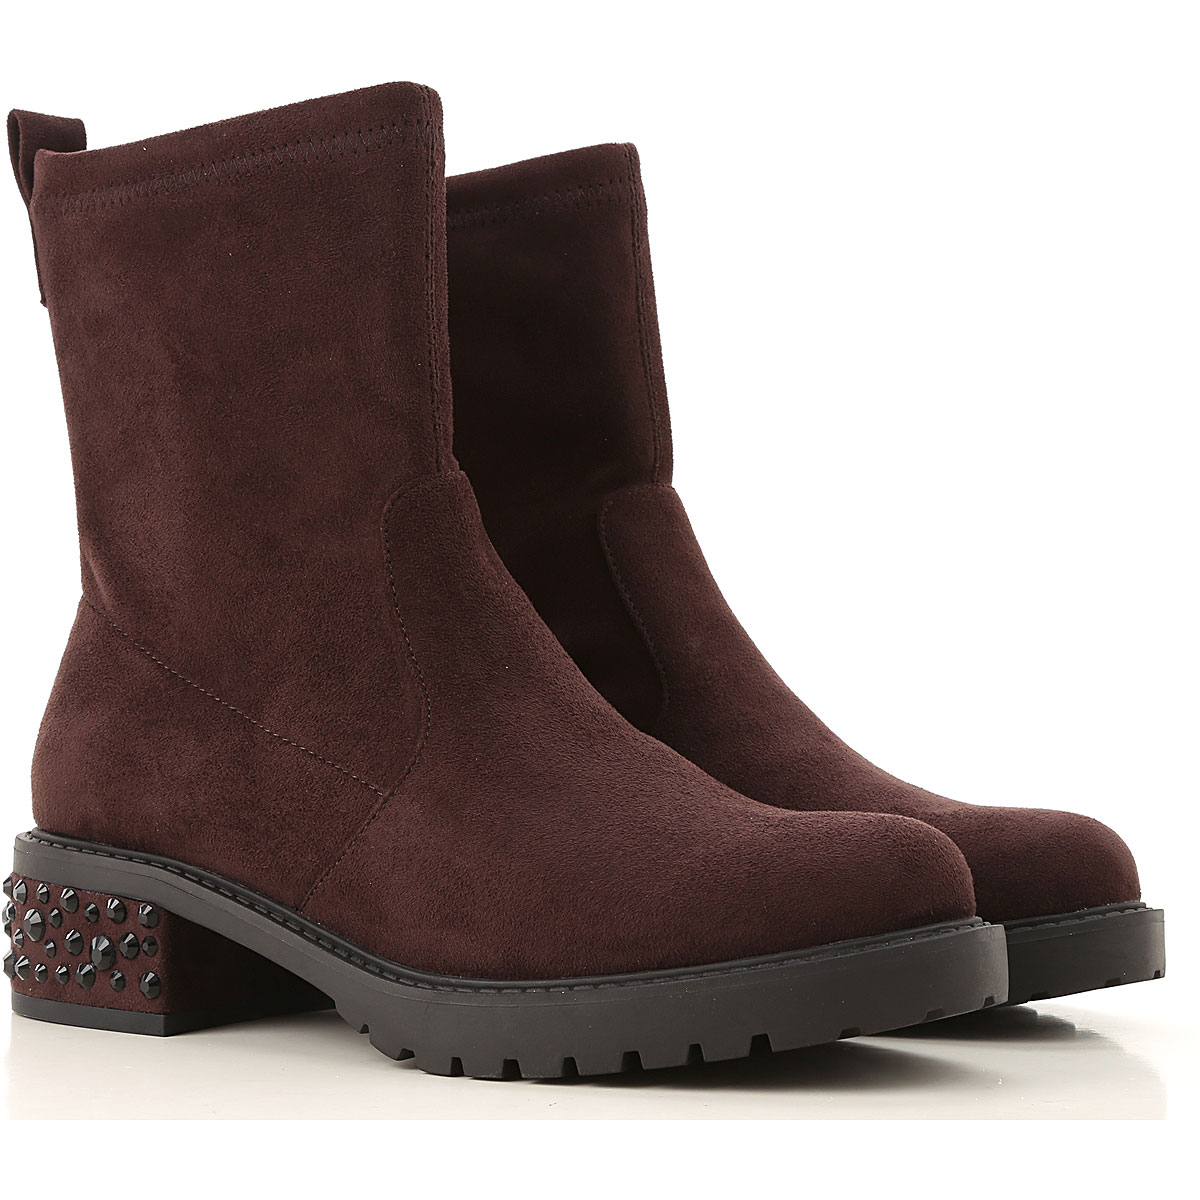 Liu Jo Boots for Women, Booties On Sale, Brown, Microfiber Stretch, 2019, 10 6 7 8 9